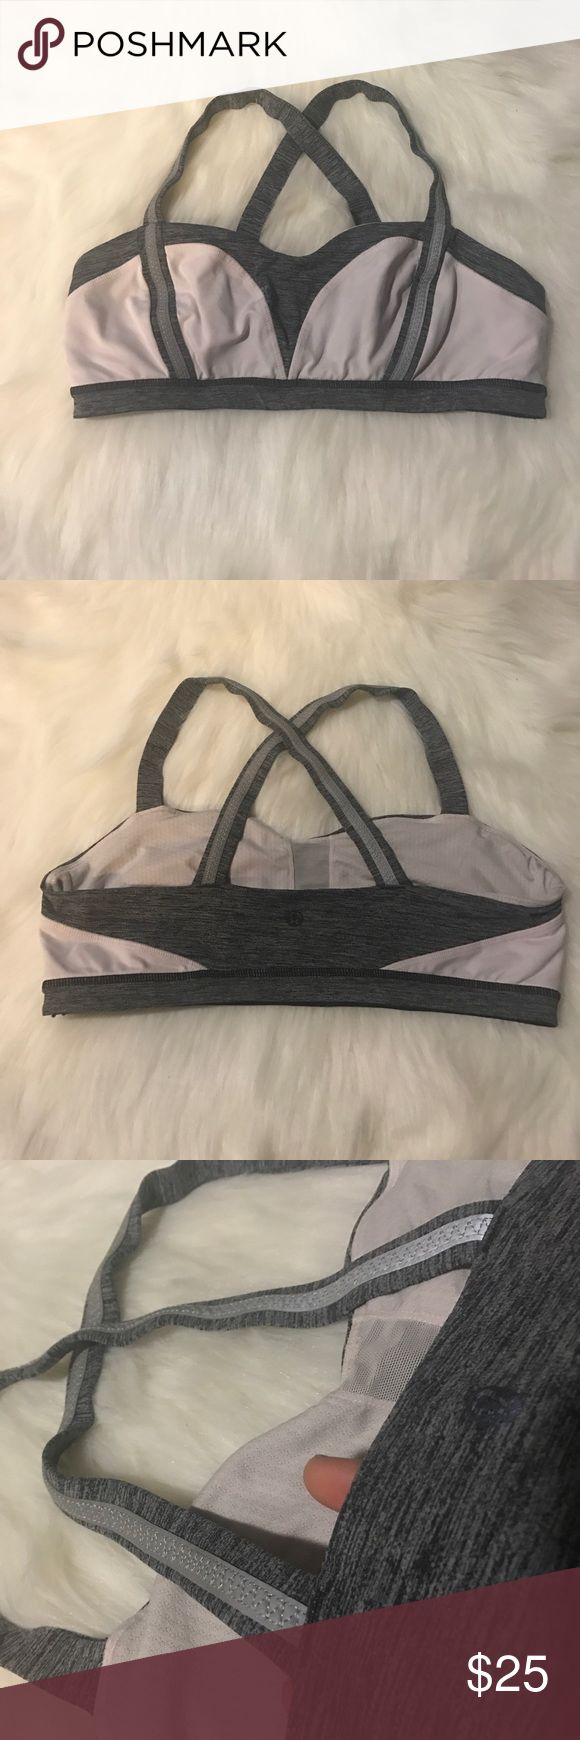 Lululemon Sports Bra Great condition sports bra. No padding (can get free from any lululemon store). Reflective bands down front and straps. See 4th photo for how light reflects. Heather like grey and off white color. It's hard to explain the lighter color. No trades please. Smoke free home. lululemon athletica Intimates & Sleepwear Bras